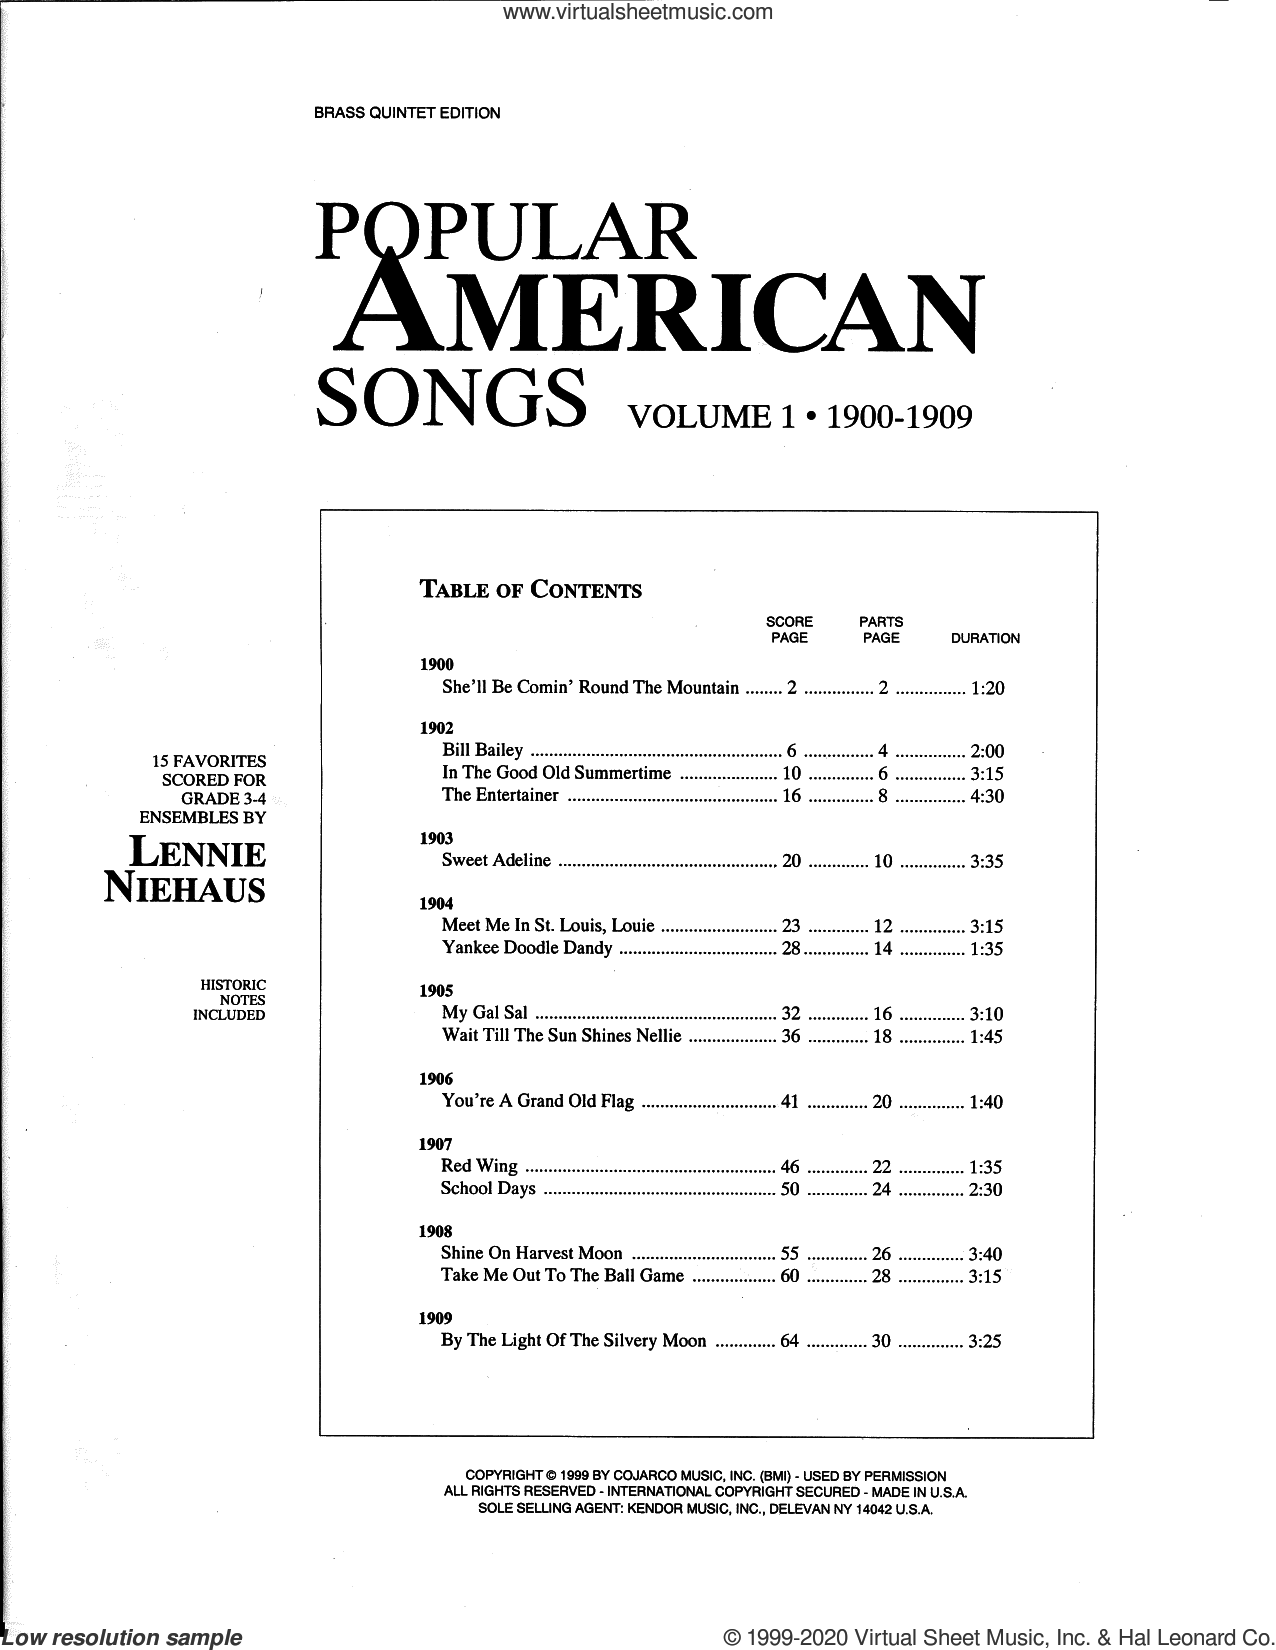 Popular American Songs, Volume 1 - 1st Trumpet sheet music for brass quintet by Lennie Niehaus and Miscellaneous, intermediate skill level